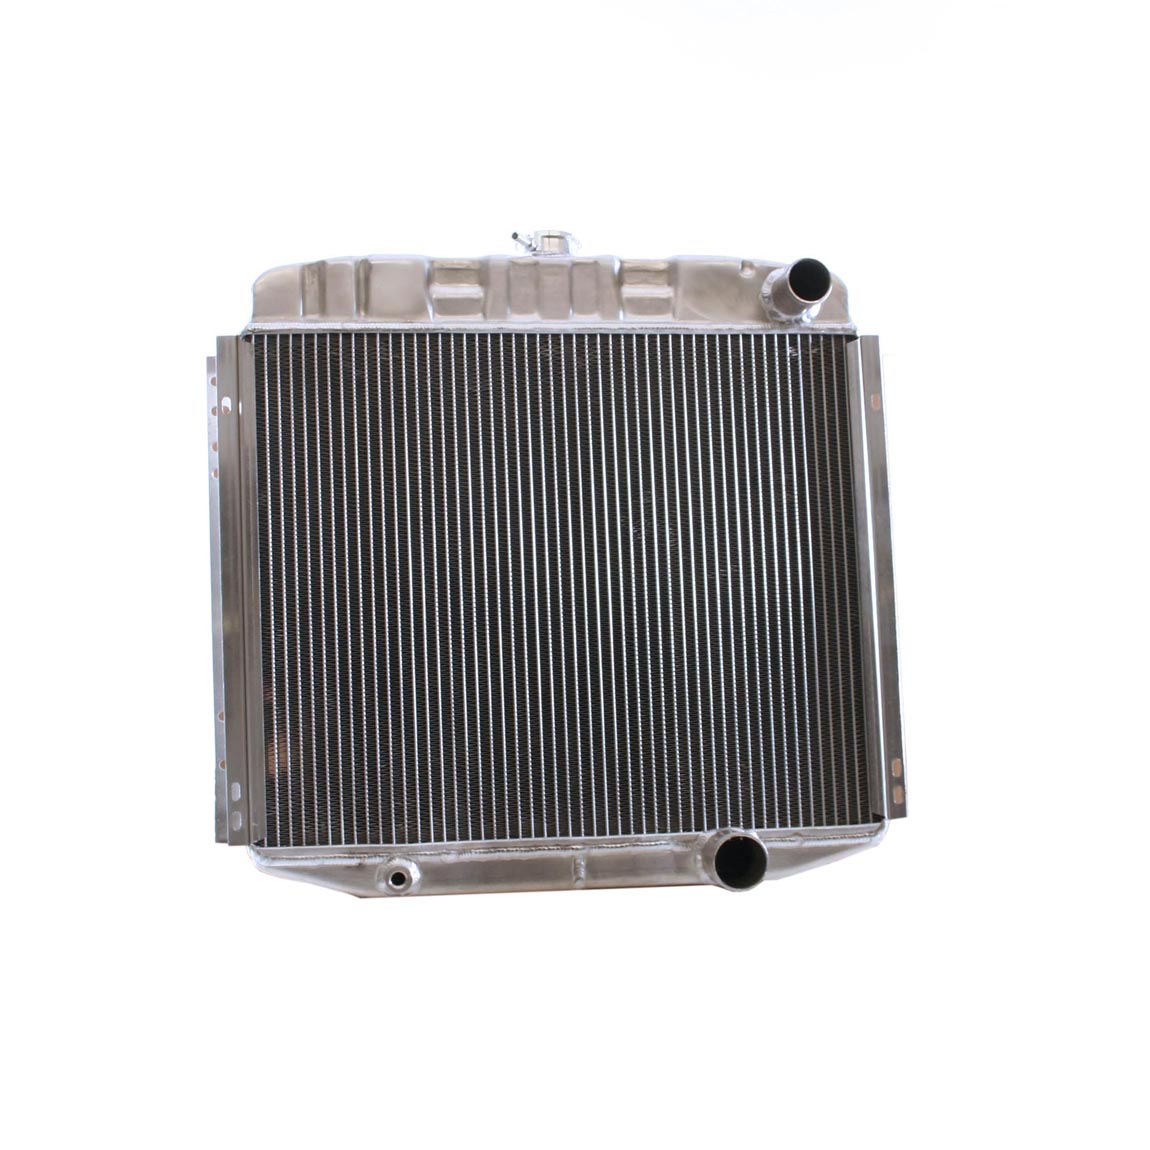 1963 Ford  Griffin Aluminum Radiator - Part Number 7-00037